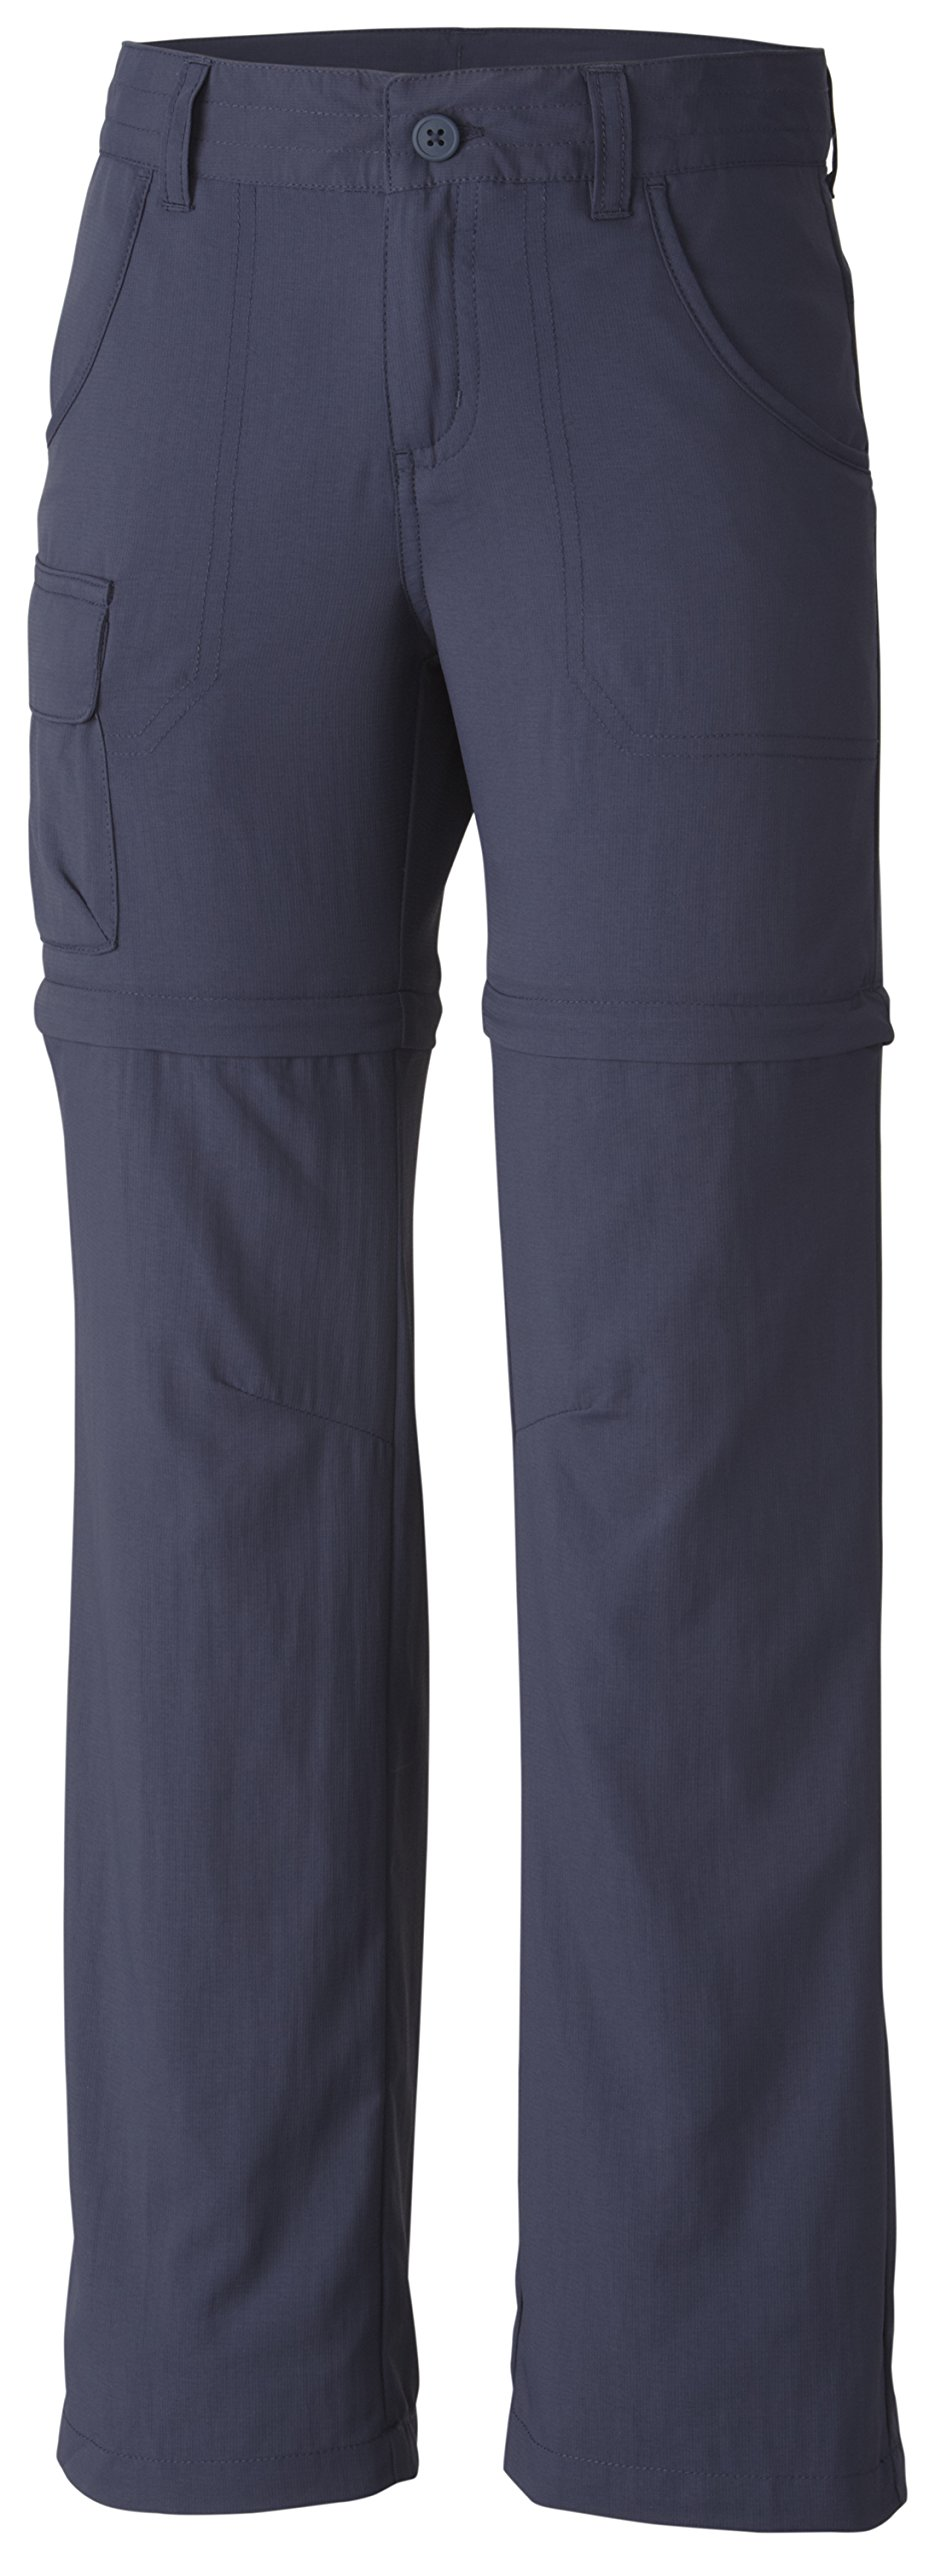 Columbia Girl's Silver Ridge III Convertible Pant (Youth), Nocturnal, Small